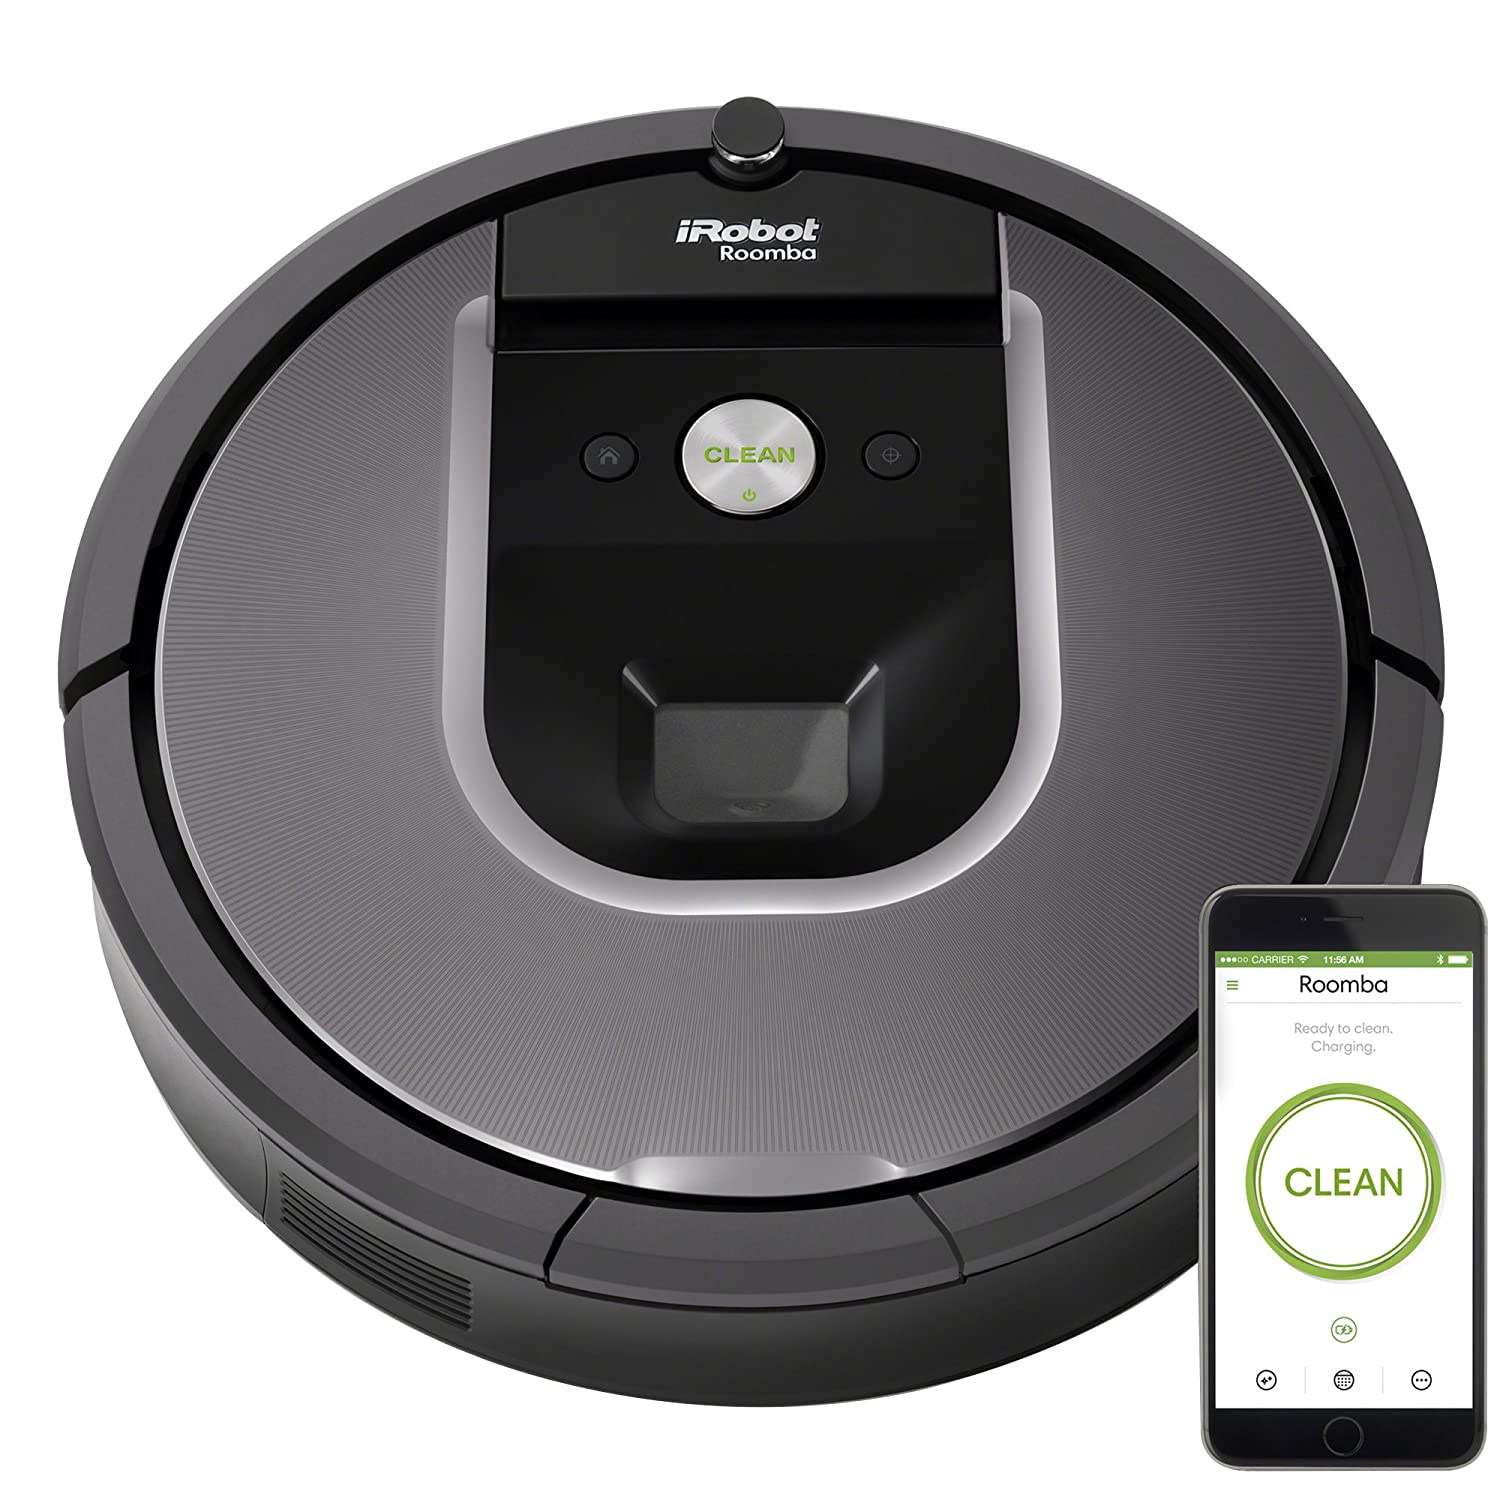 Top 7 Best Robot Vacuum For Pet Hair And Hardwood Floors - Buyer's Guide 1